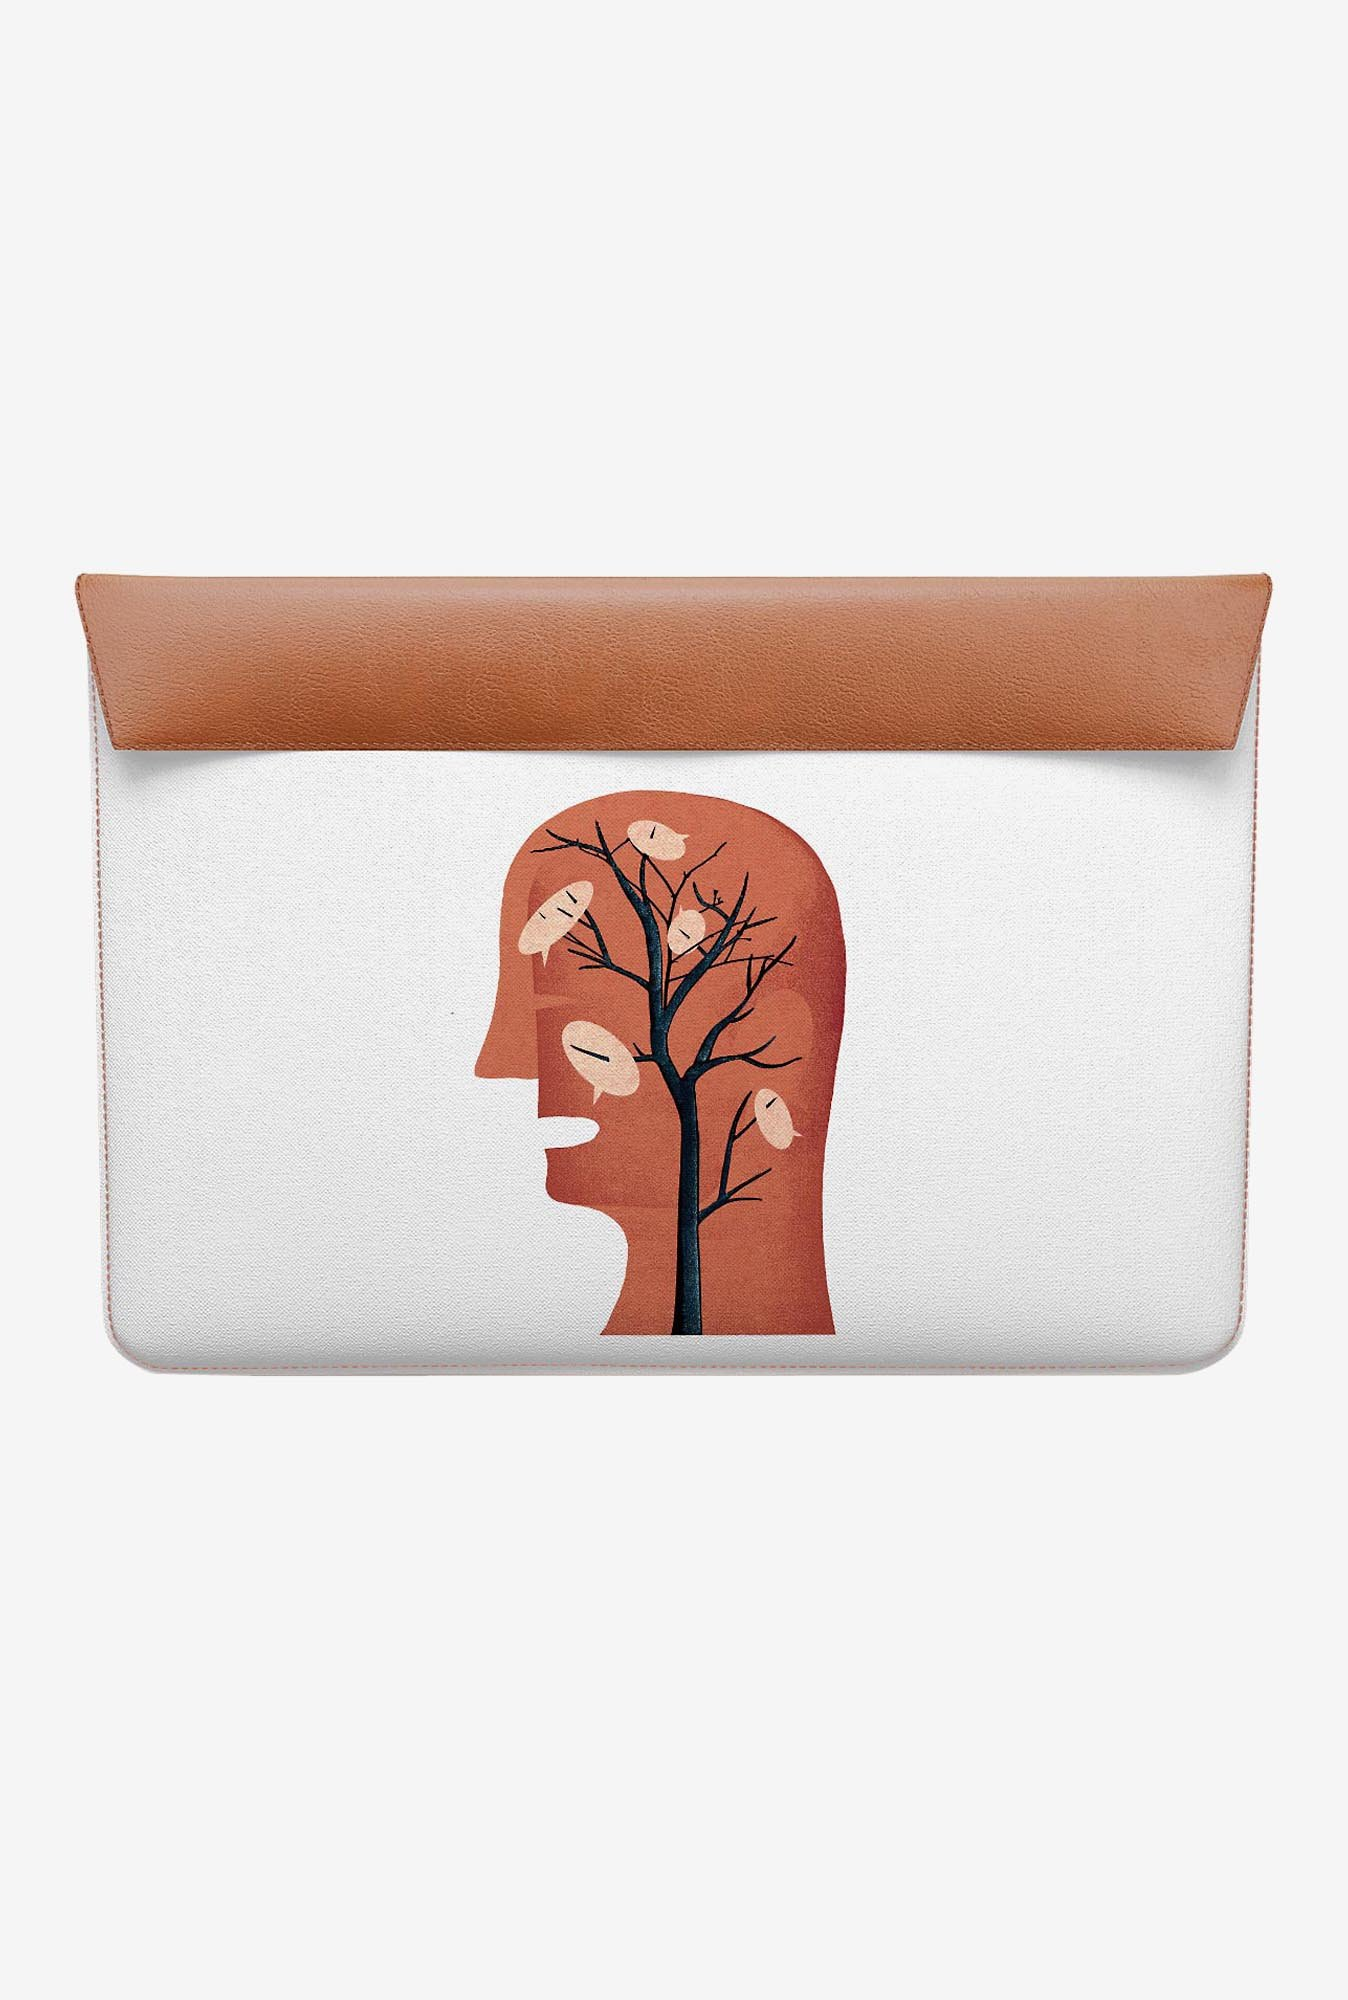 DailyObjects Unspoken Thought MacBook 12 Envelope Sleeve